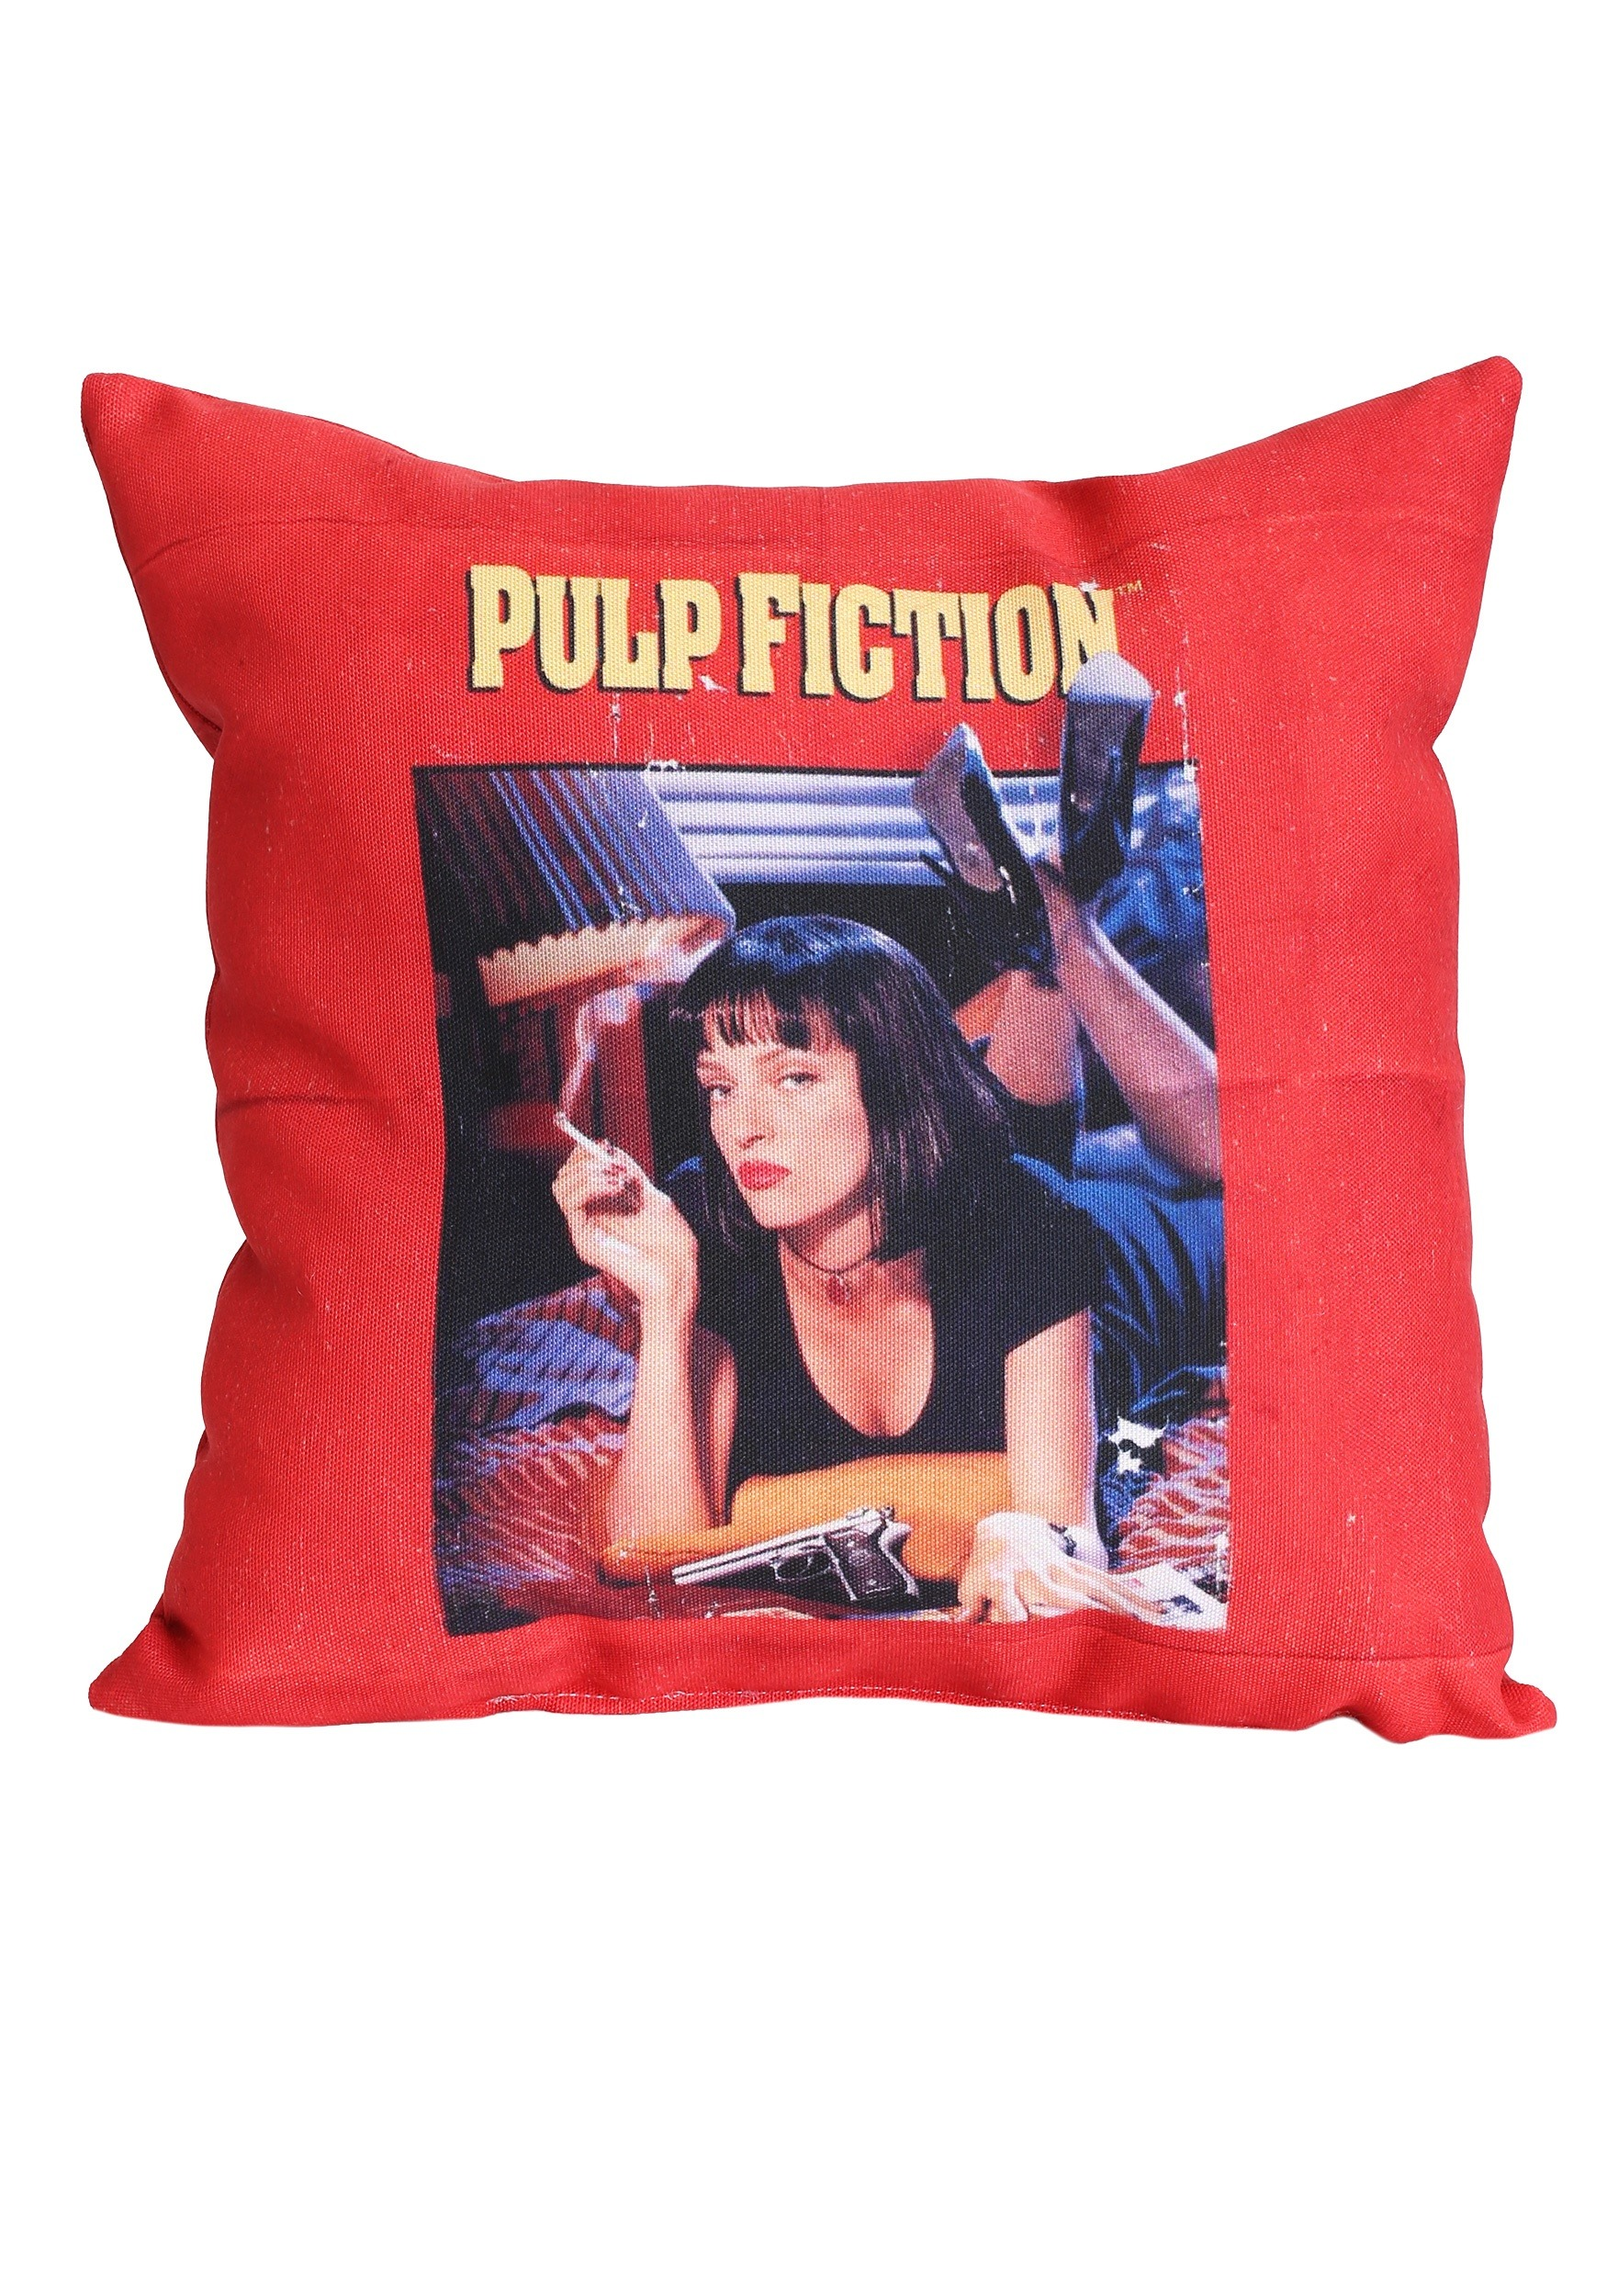 Mia Wallace Pulp Fiction Movie Poster Throw Pillow